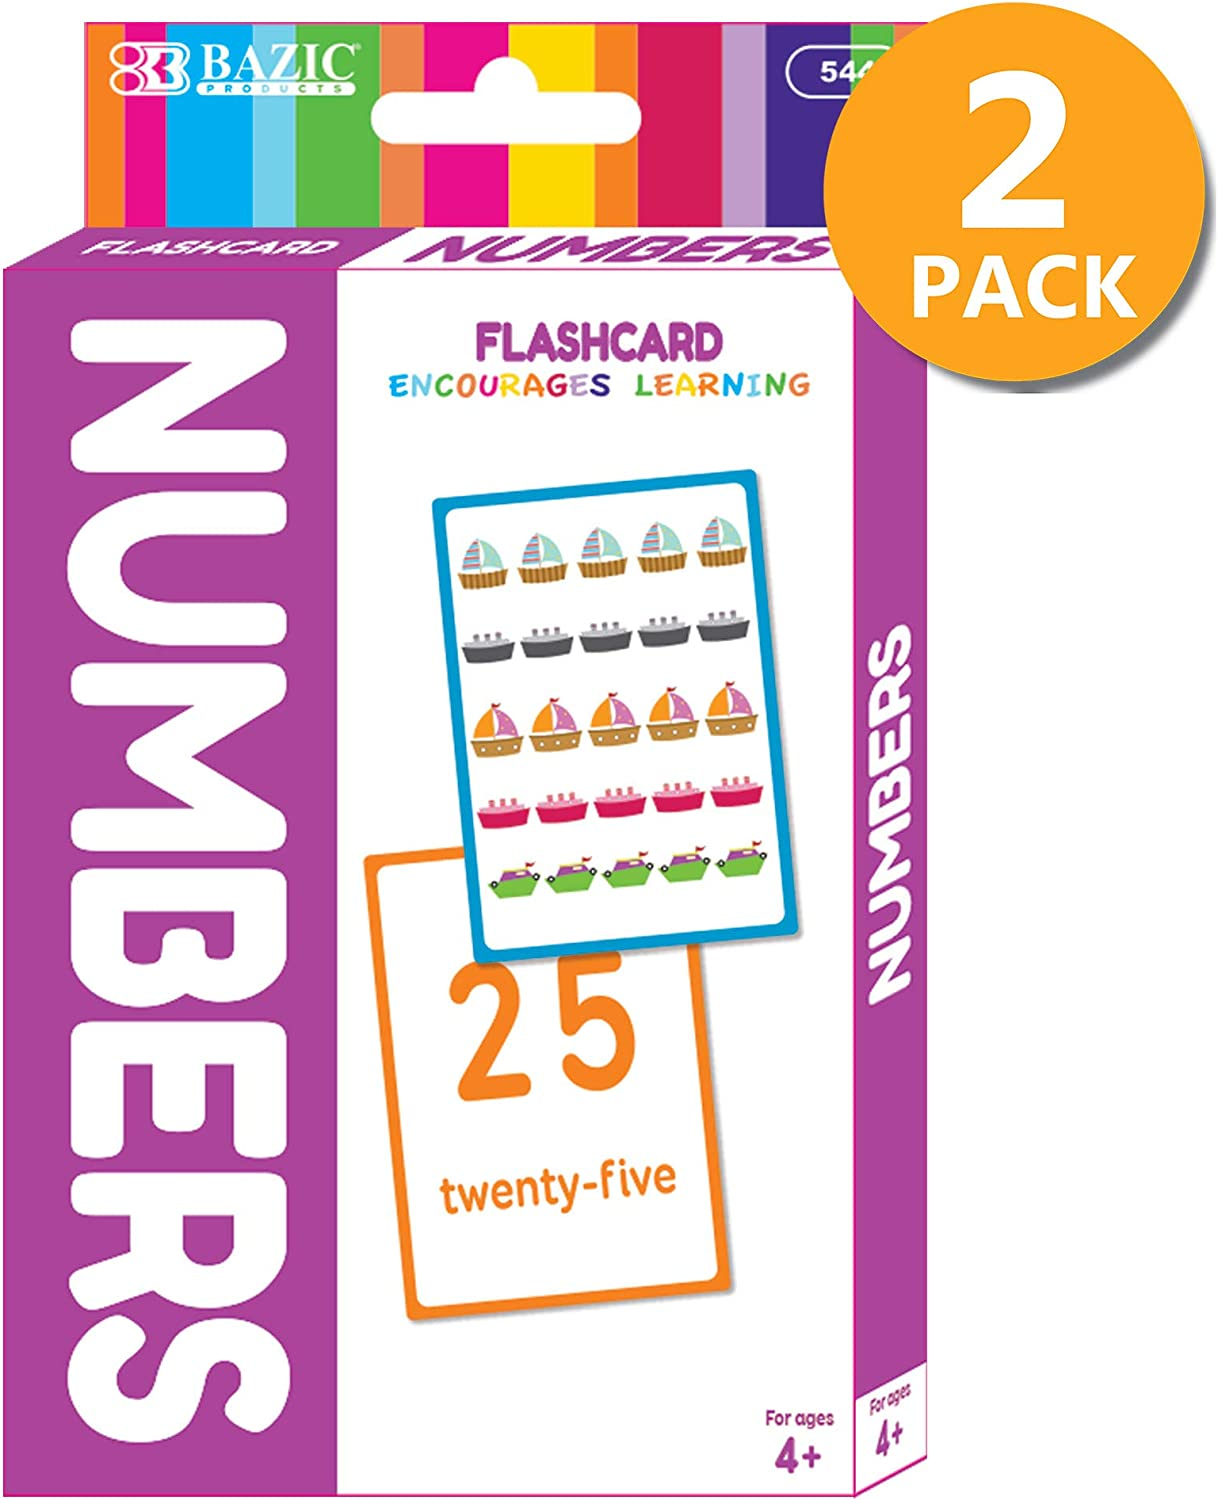 Matching Picture Abcs 1-Pack 36//Pack Letters BAZIC Color Preschool Flash Cards Beginning for Kids Kindergarten Activities Card Game Education Training Learning Practice